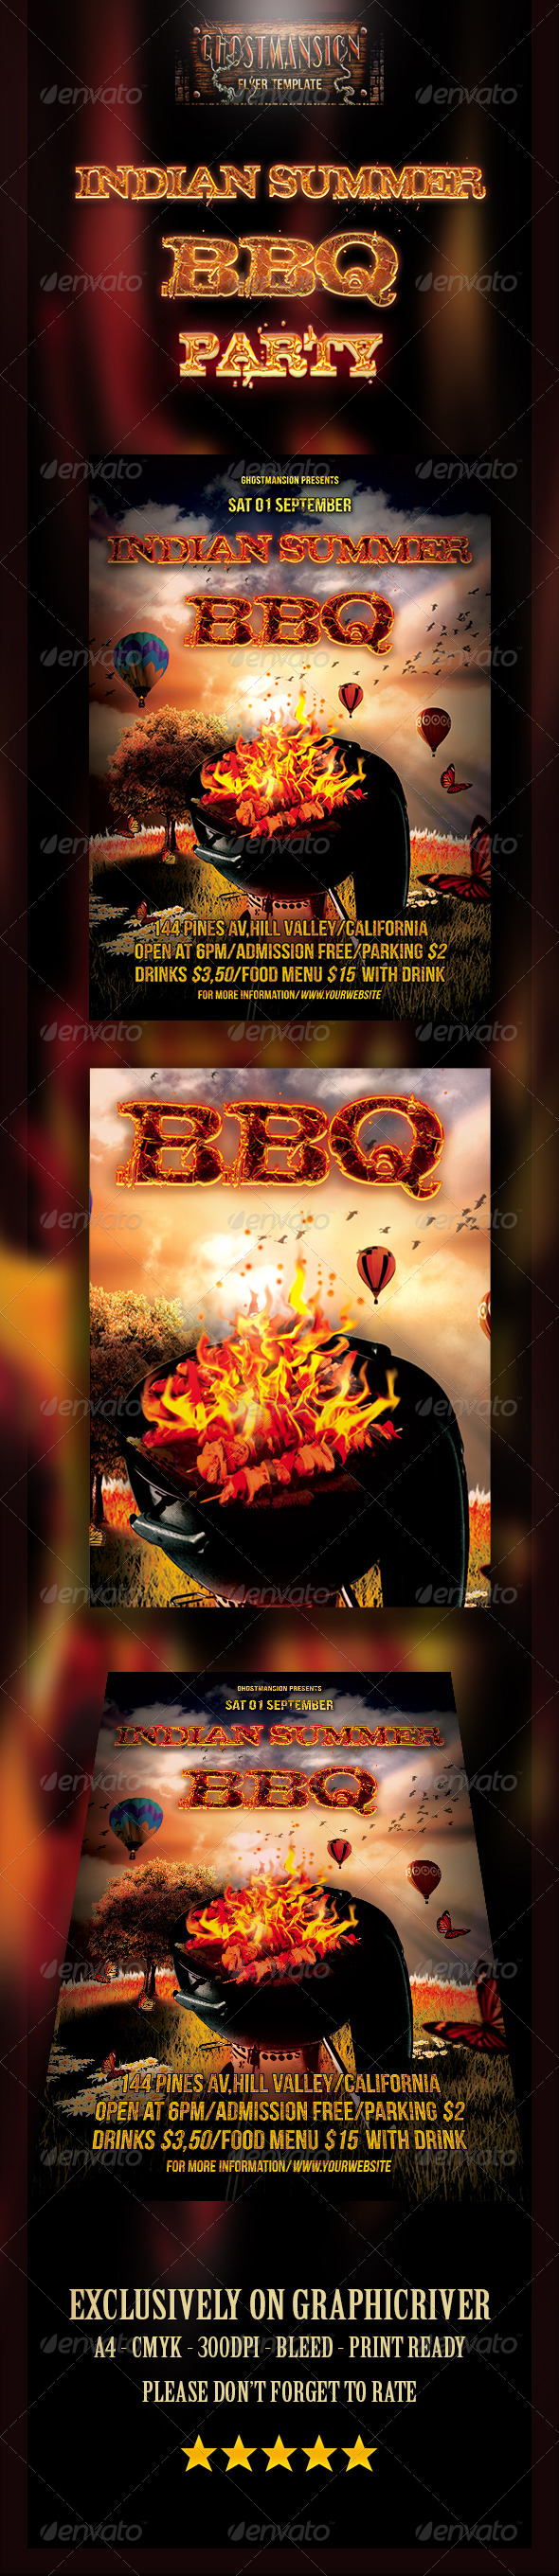 GraphicRiver Indian Summer BBQ Party 8338739